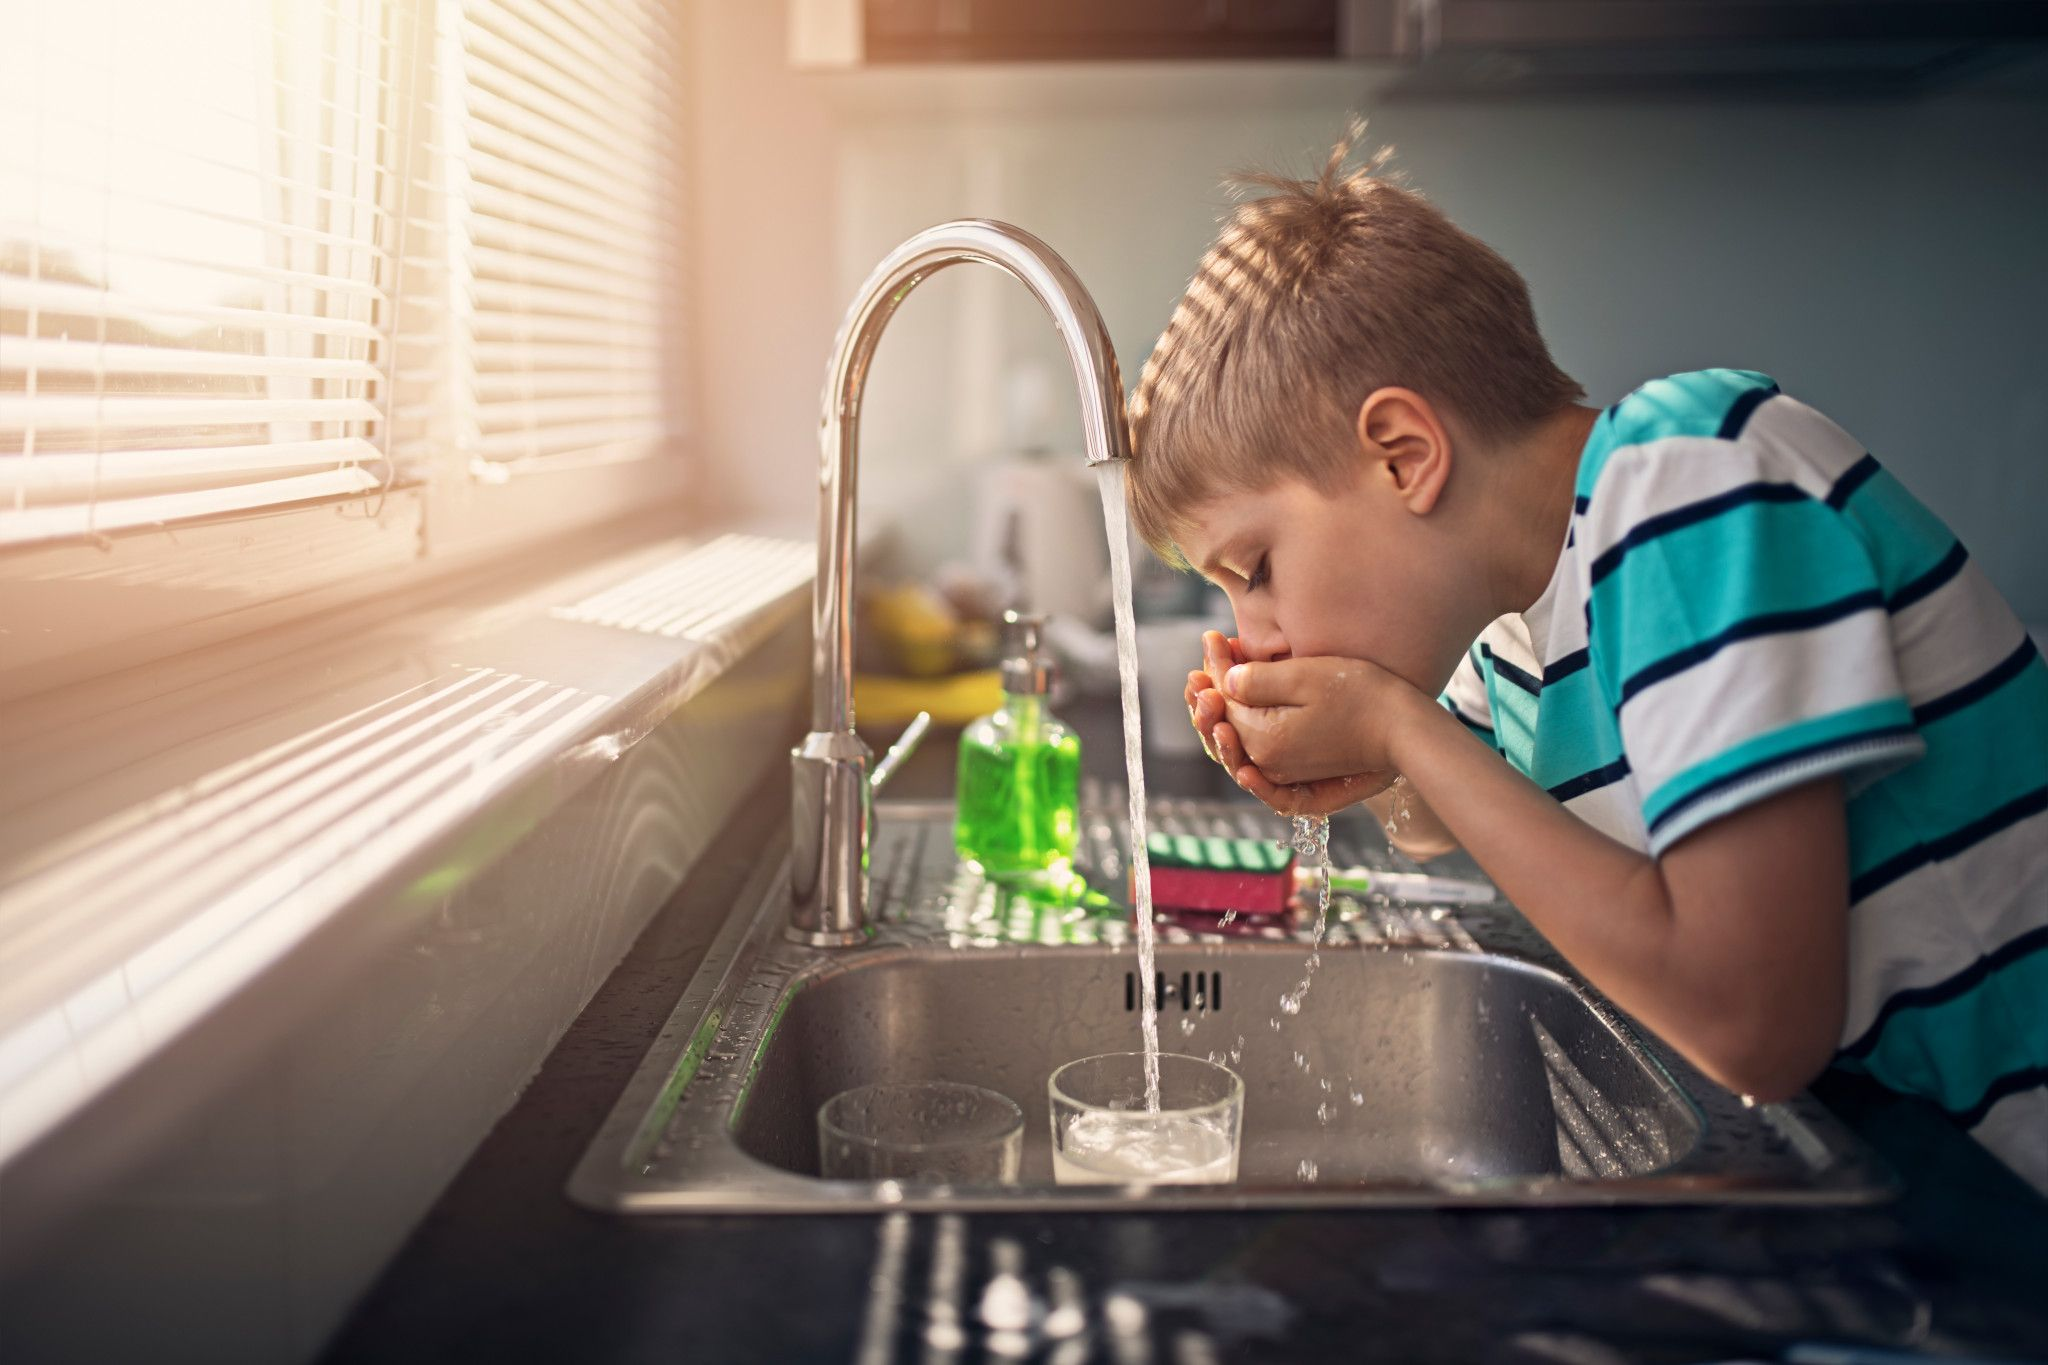 An image of a boy drinking water from the sink.